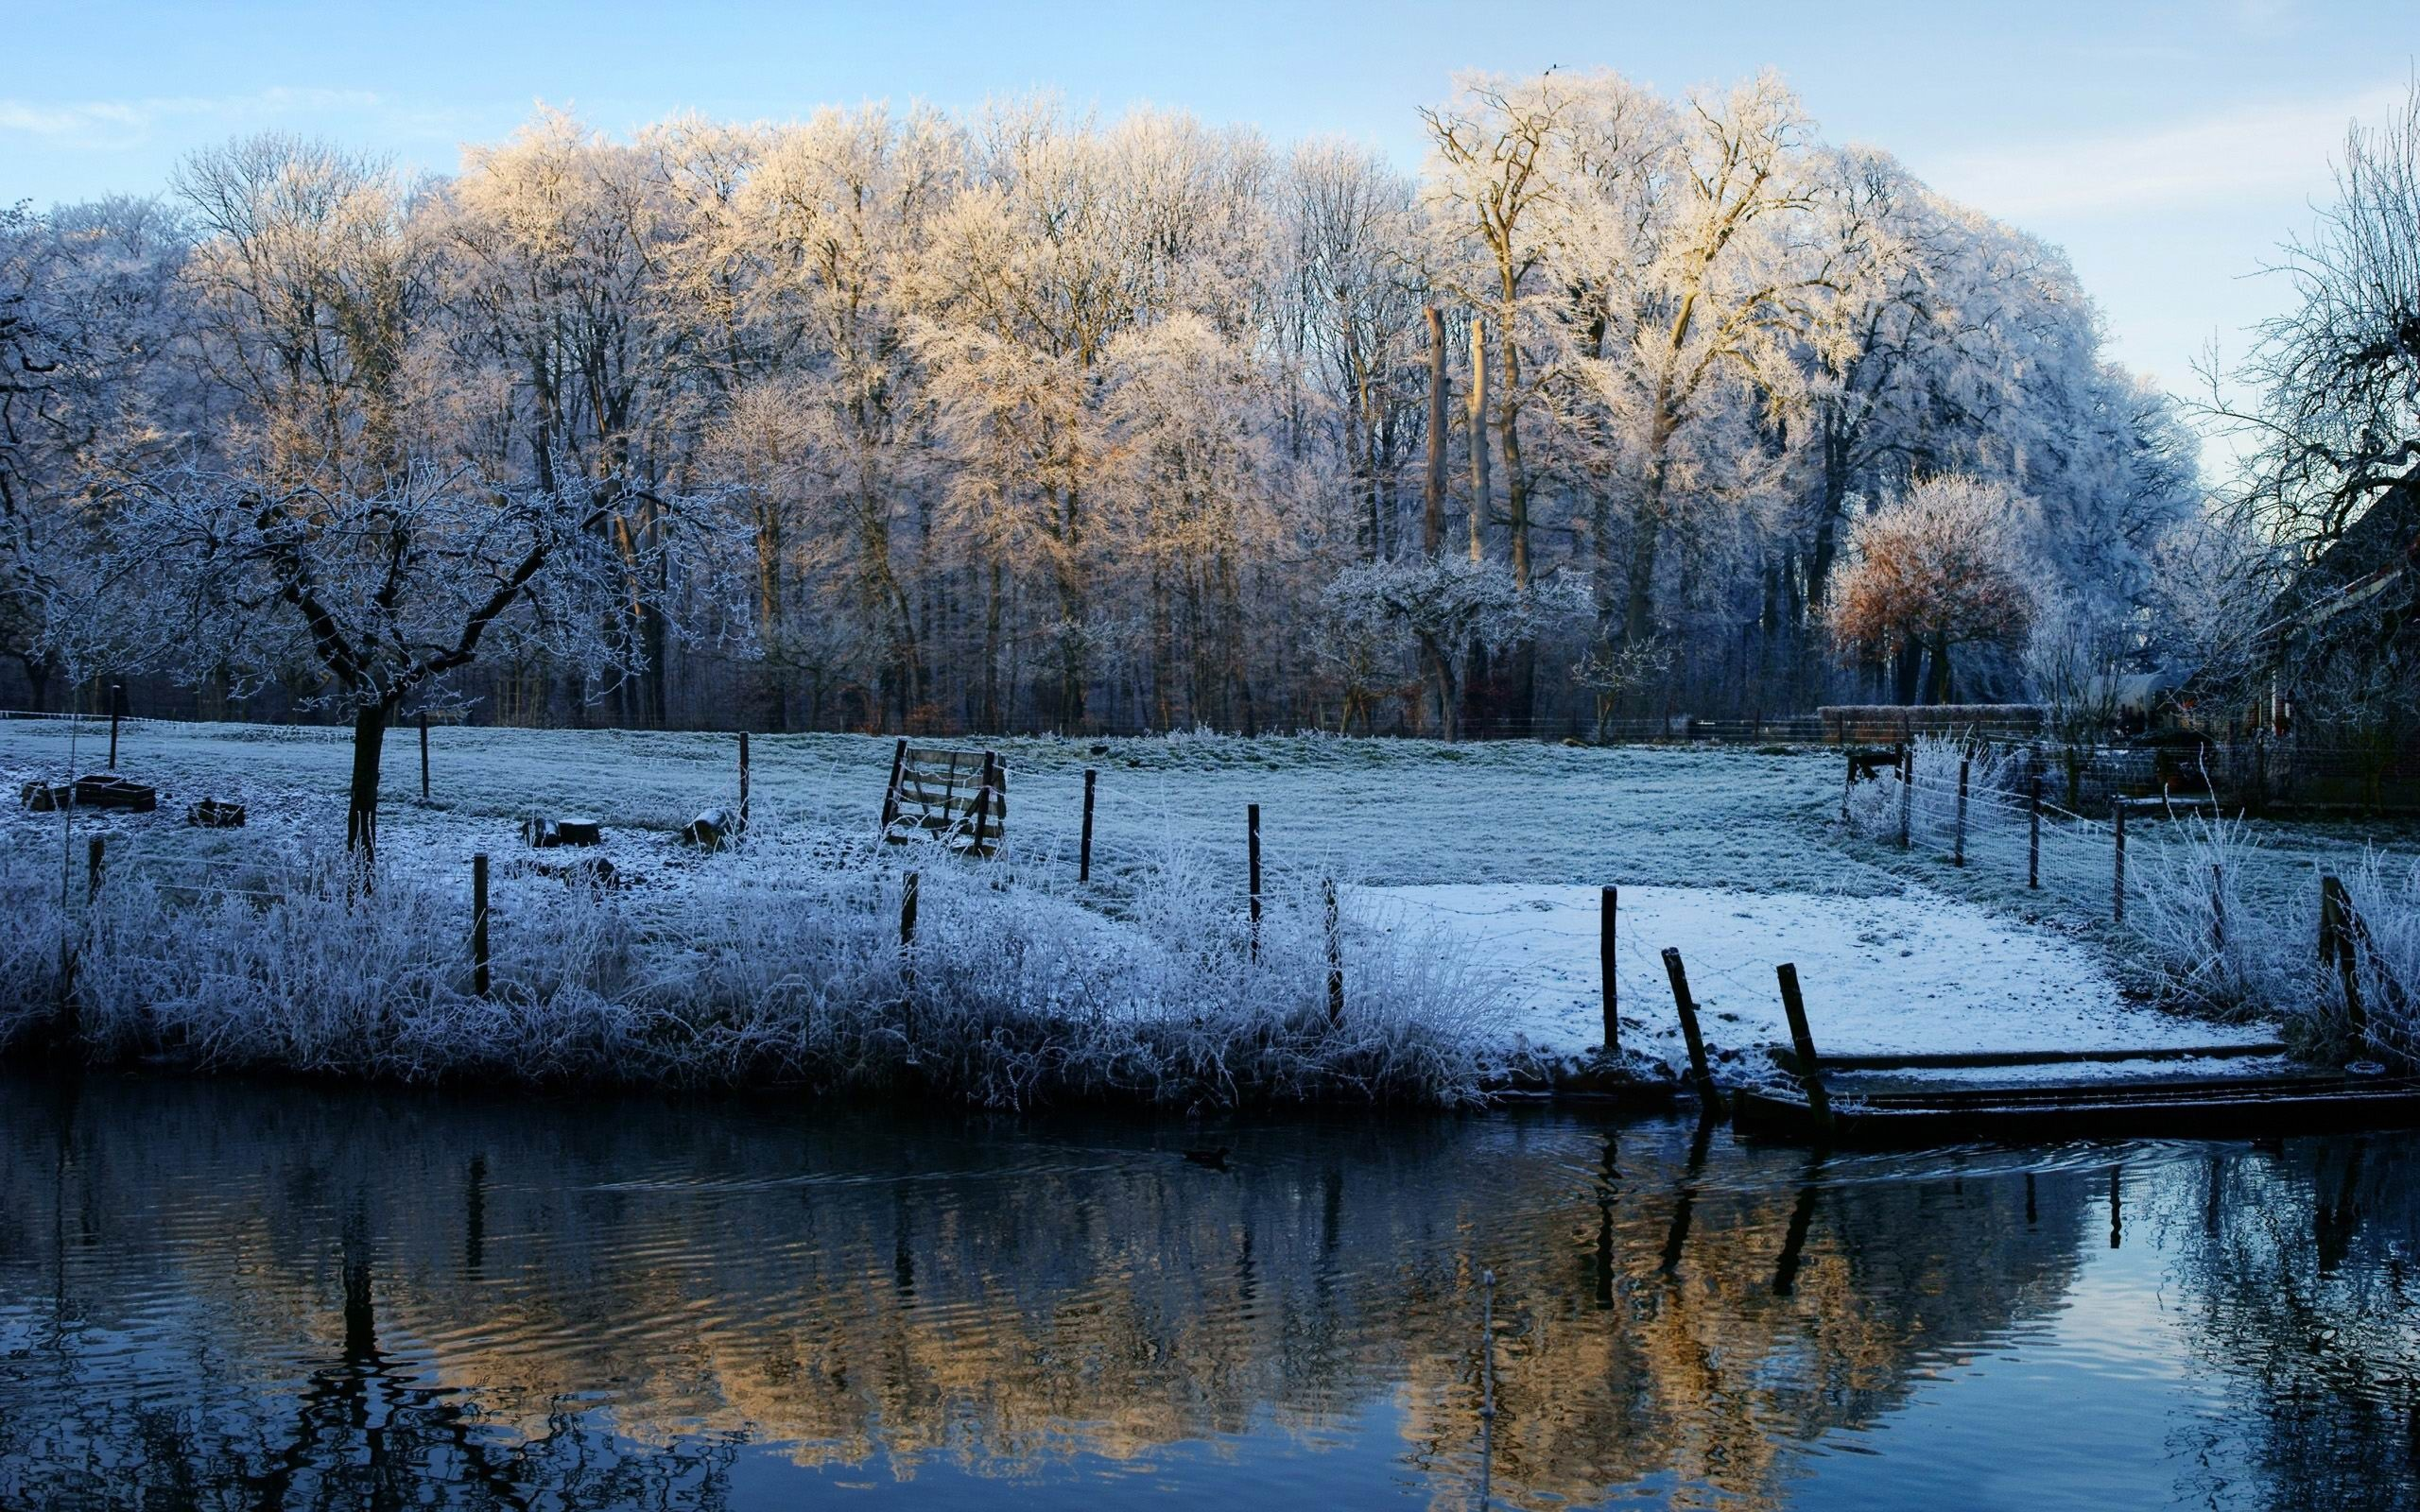 wisconsin photos of scenery | Winter Scenery Winter Snow Theme | HQ  Wallpapers for PC